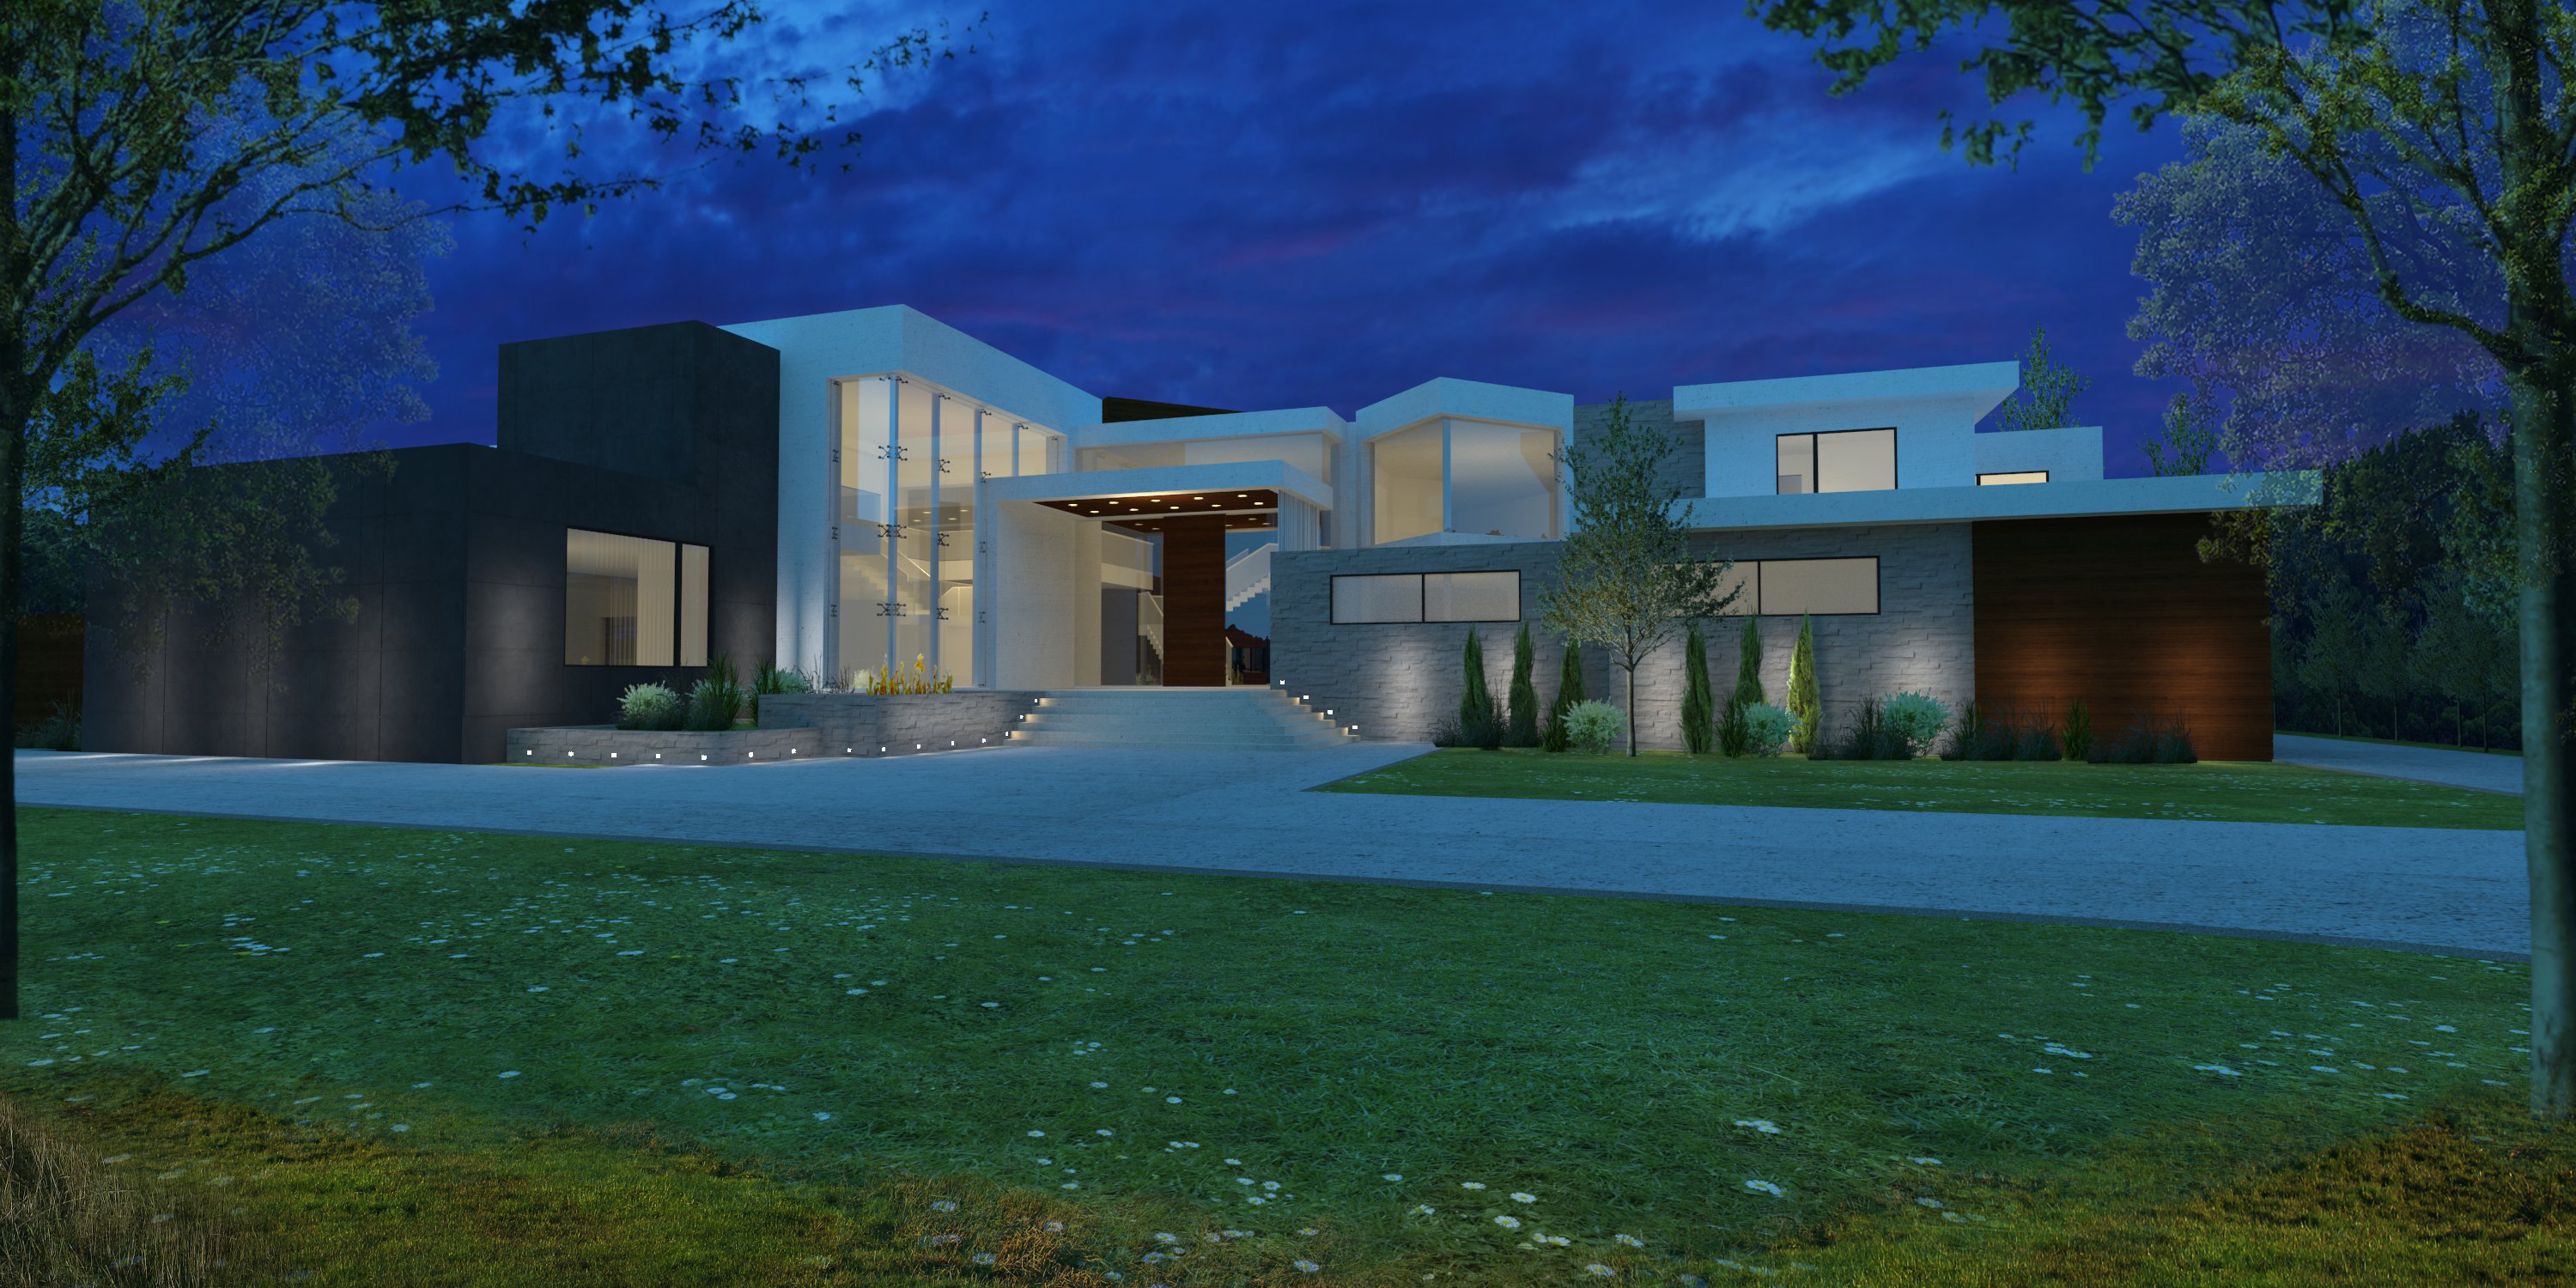 Contemporary night rendering